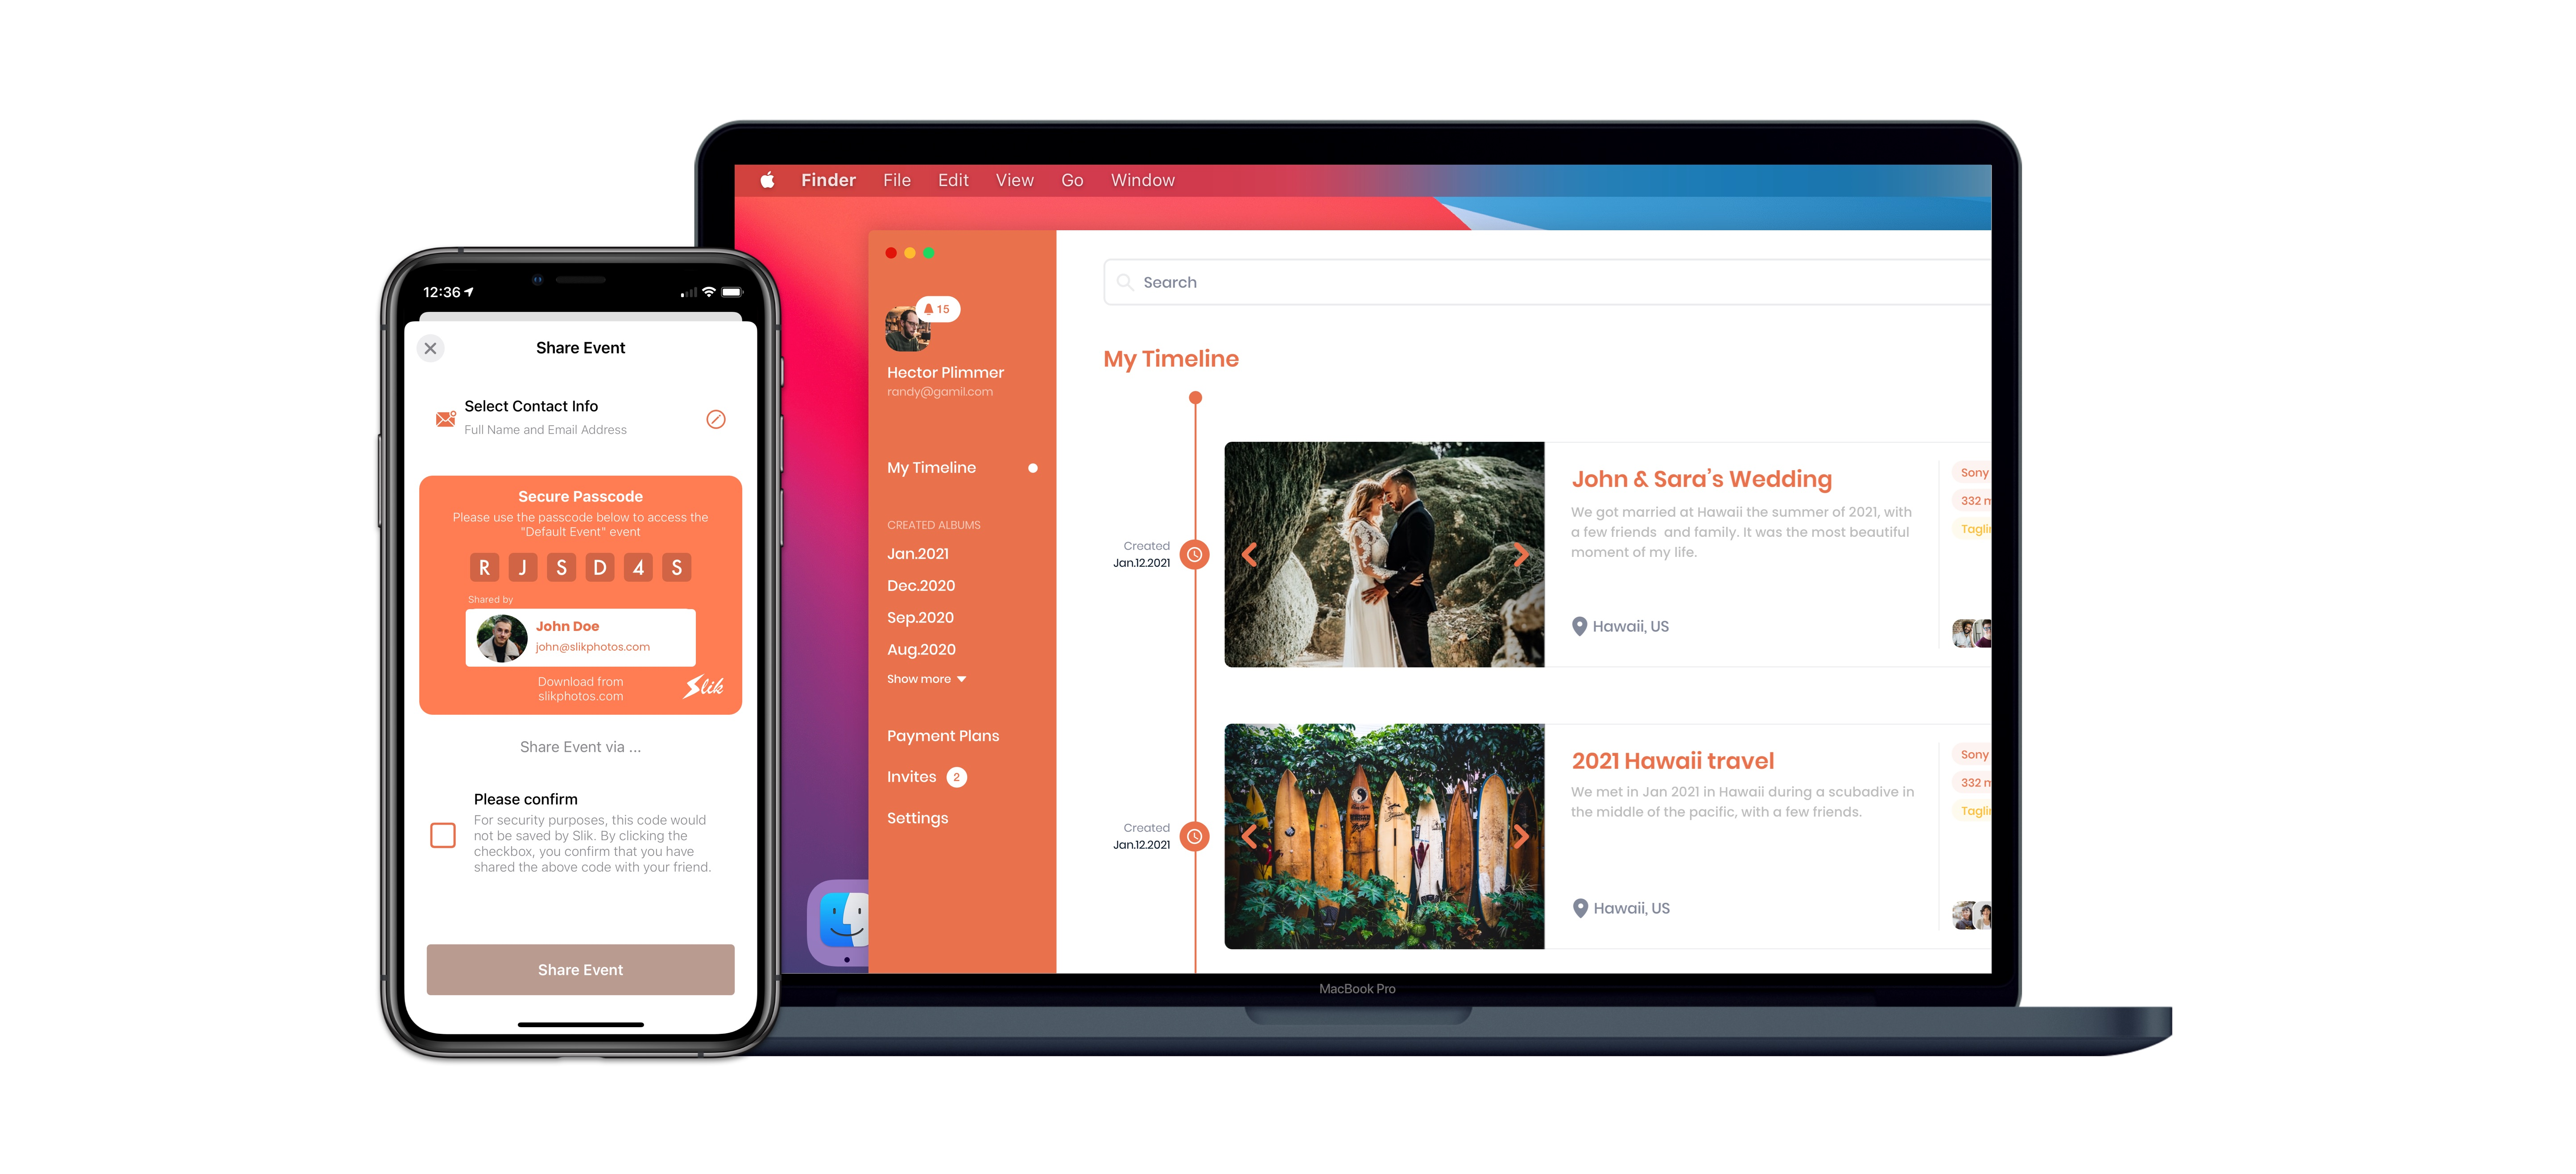 Slik Photos app screenshots for the mobile and desktop (macOS) app. The screenshots display how easy it is to securely share photos with end-to-end photo encryption.